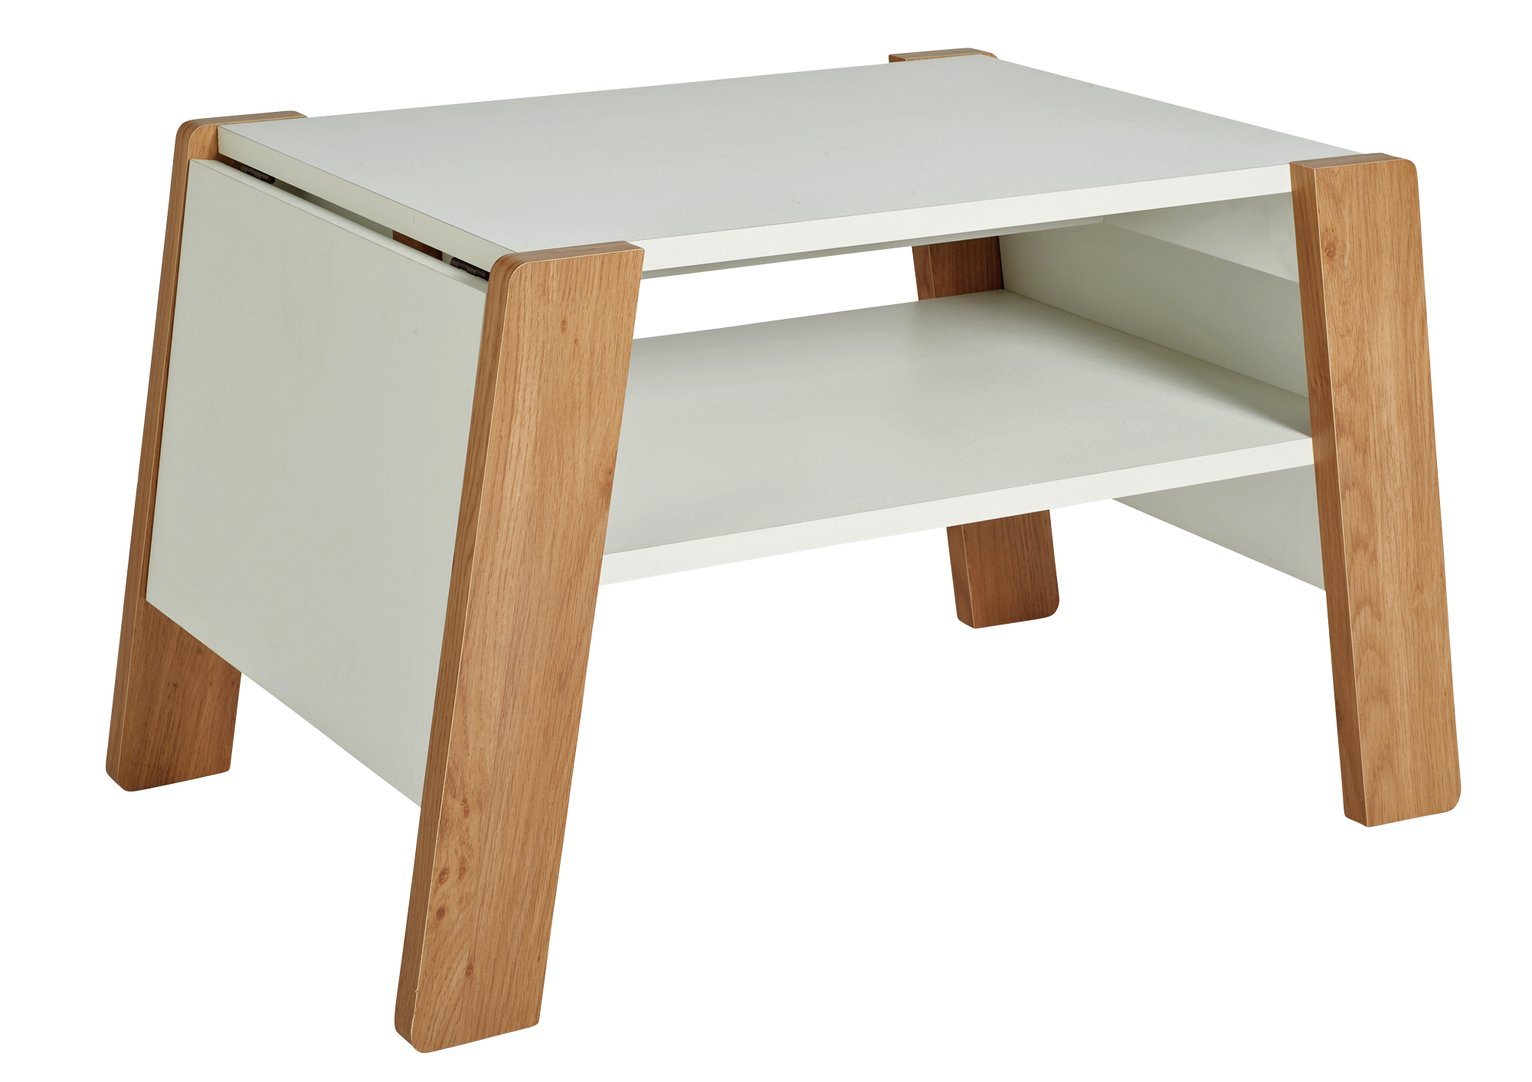 Extendable Coffee Table buy hygena extendable coffee table - white at argos.co.uk - your